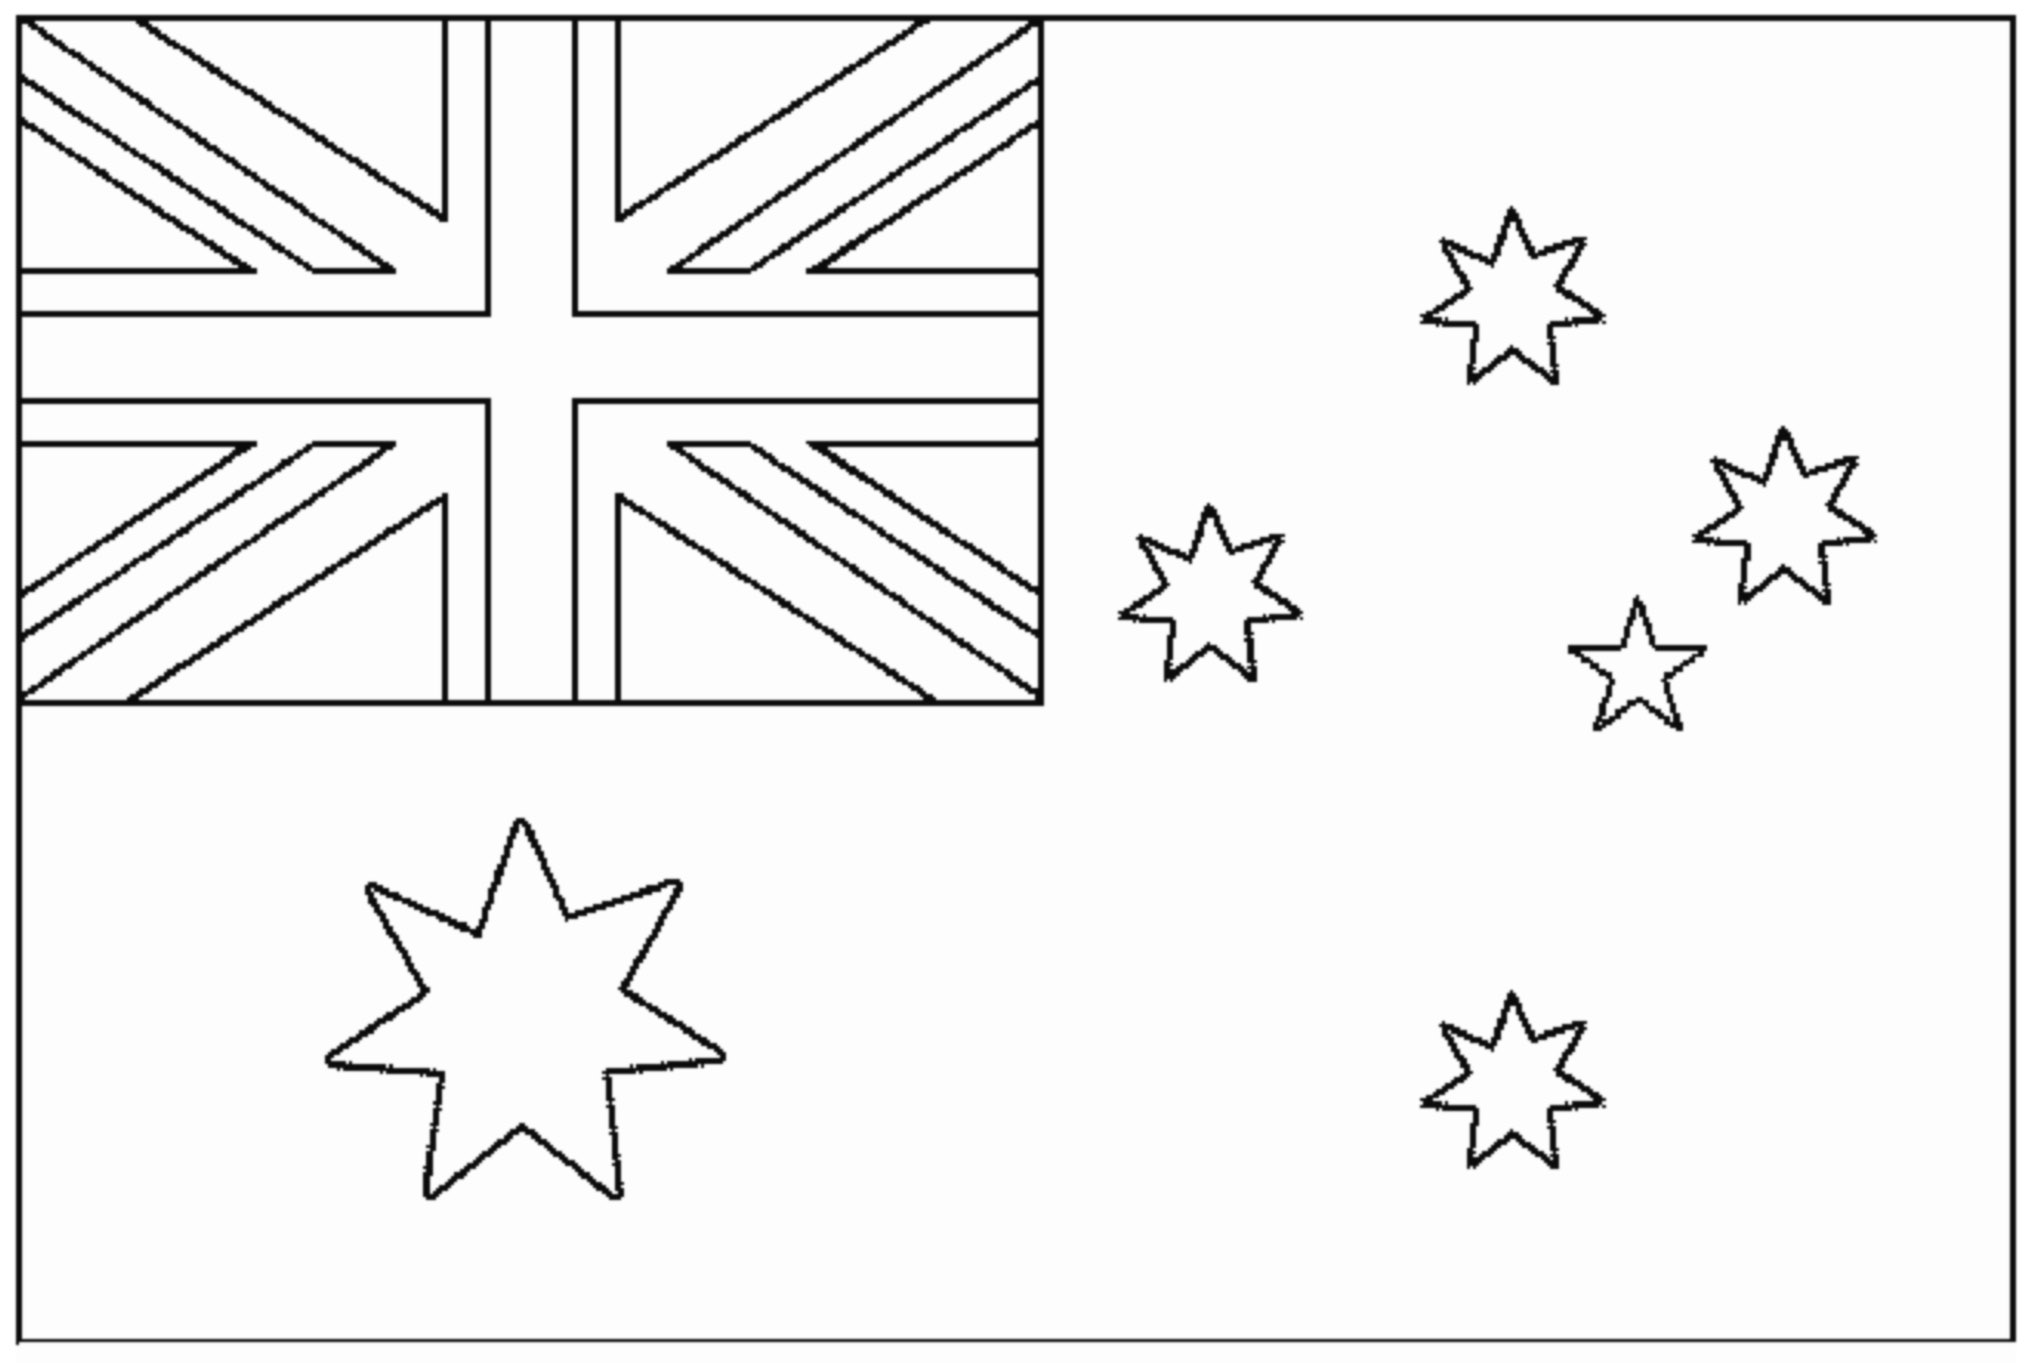 flag flags coloring for kids to print color homophone crayola crayons walmart steam coloring pages Australia Flag Coloring Page